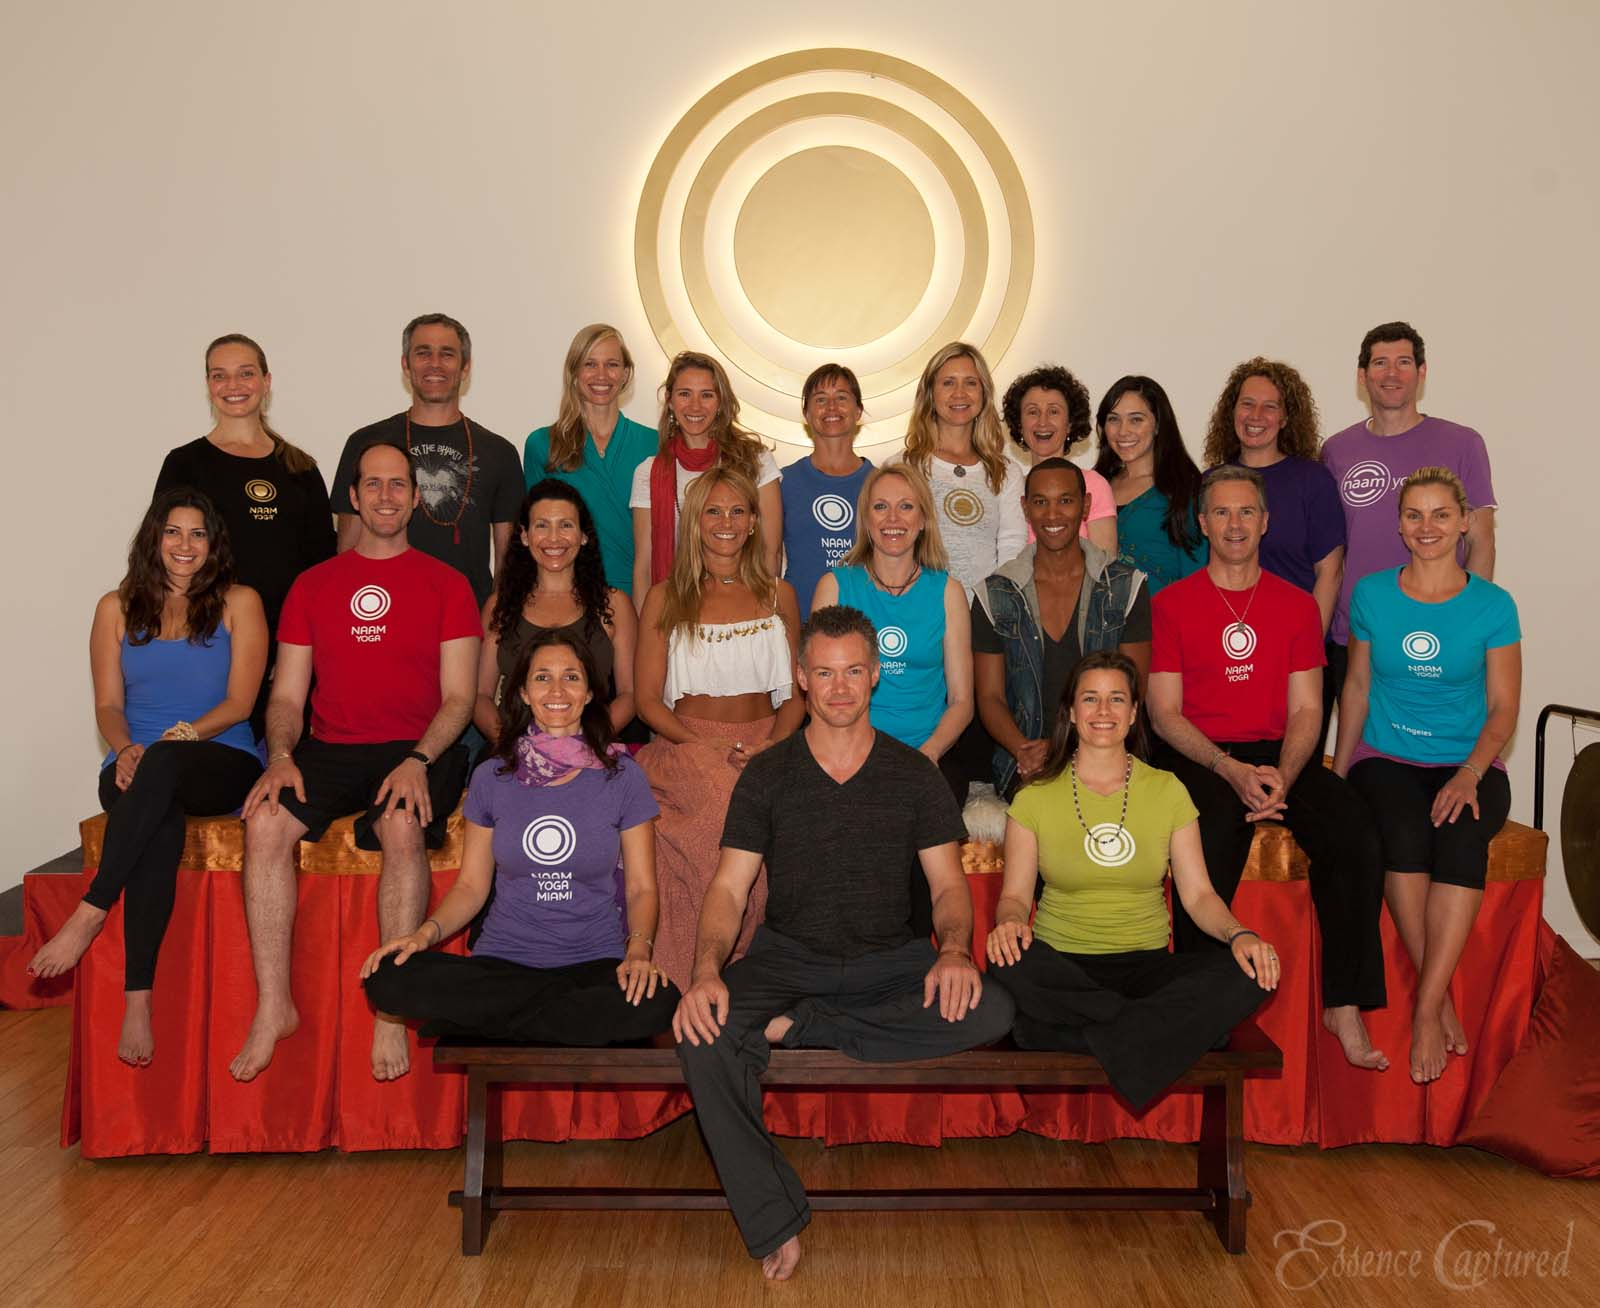 Naam Yoga Teachers group photo